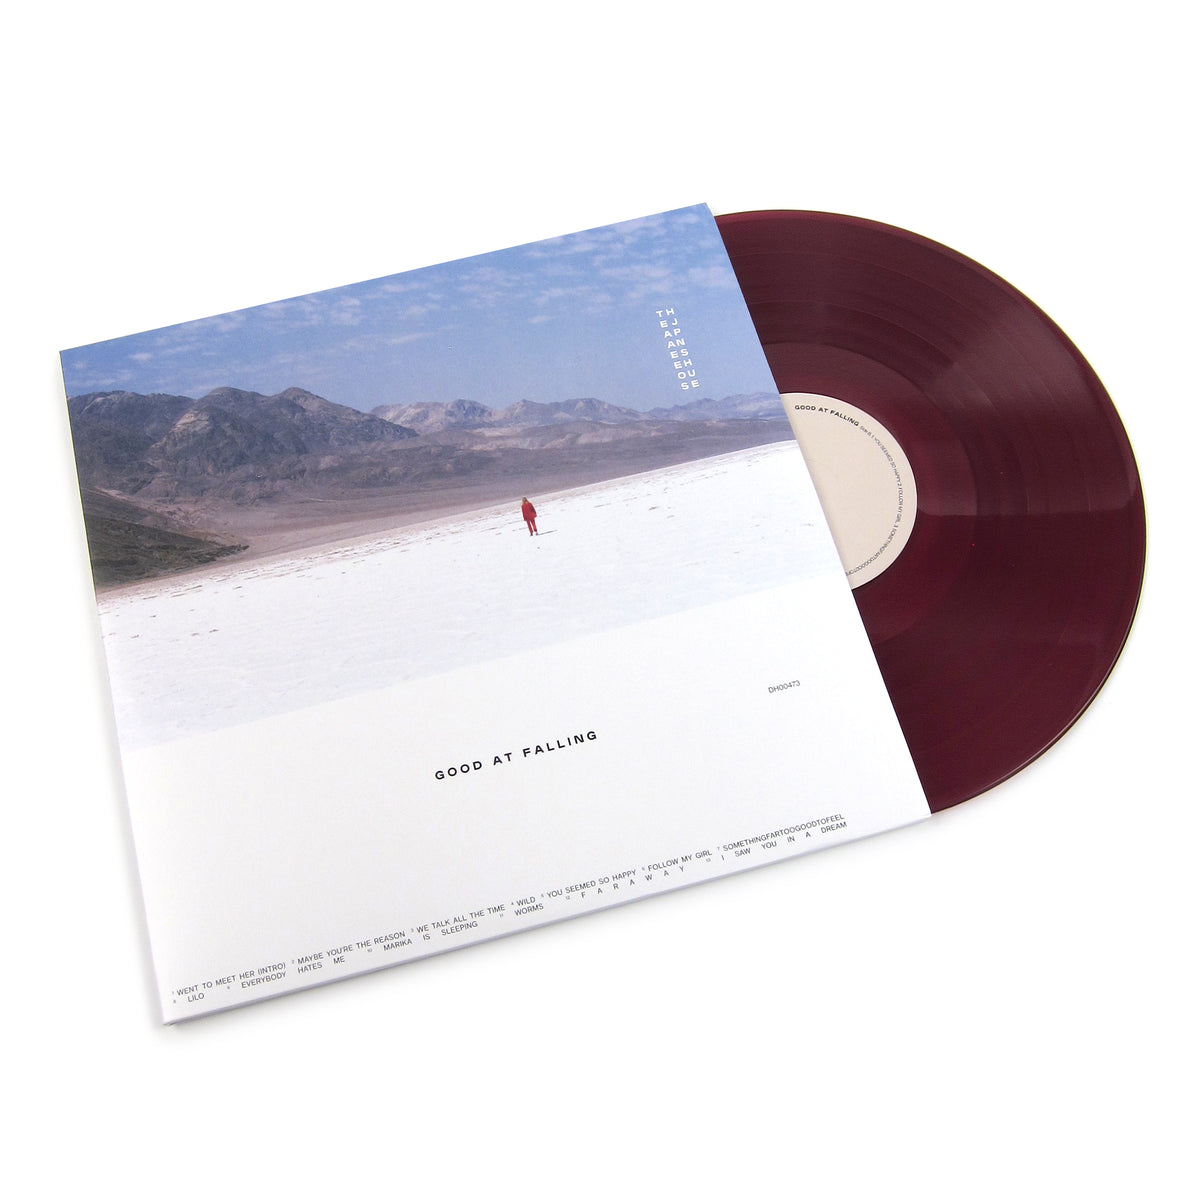 The Japanese House: Good At Falling (Colored Vinyl) Vinyl LP